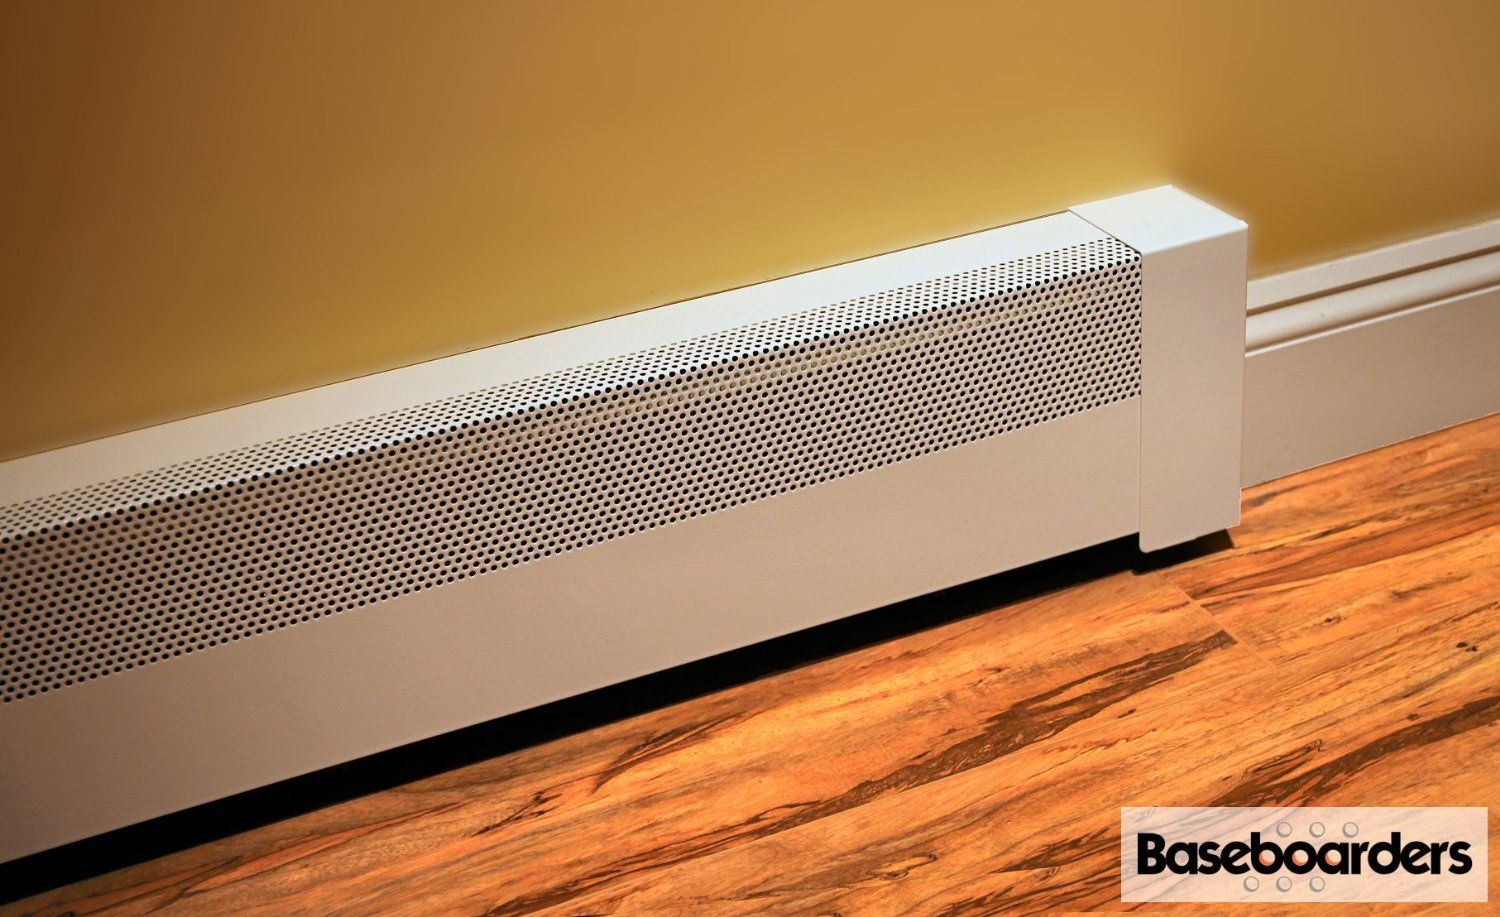 Nice Decorative Baseboard Heater Covers With